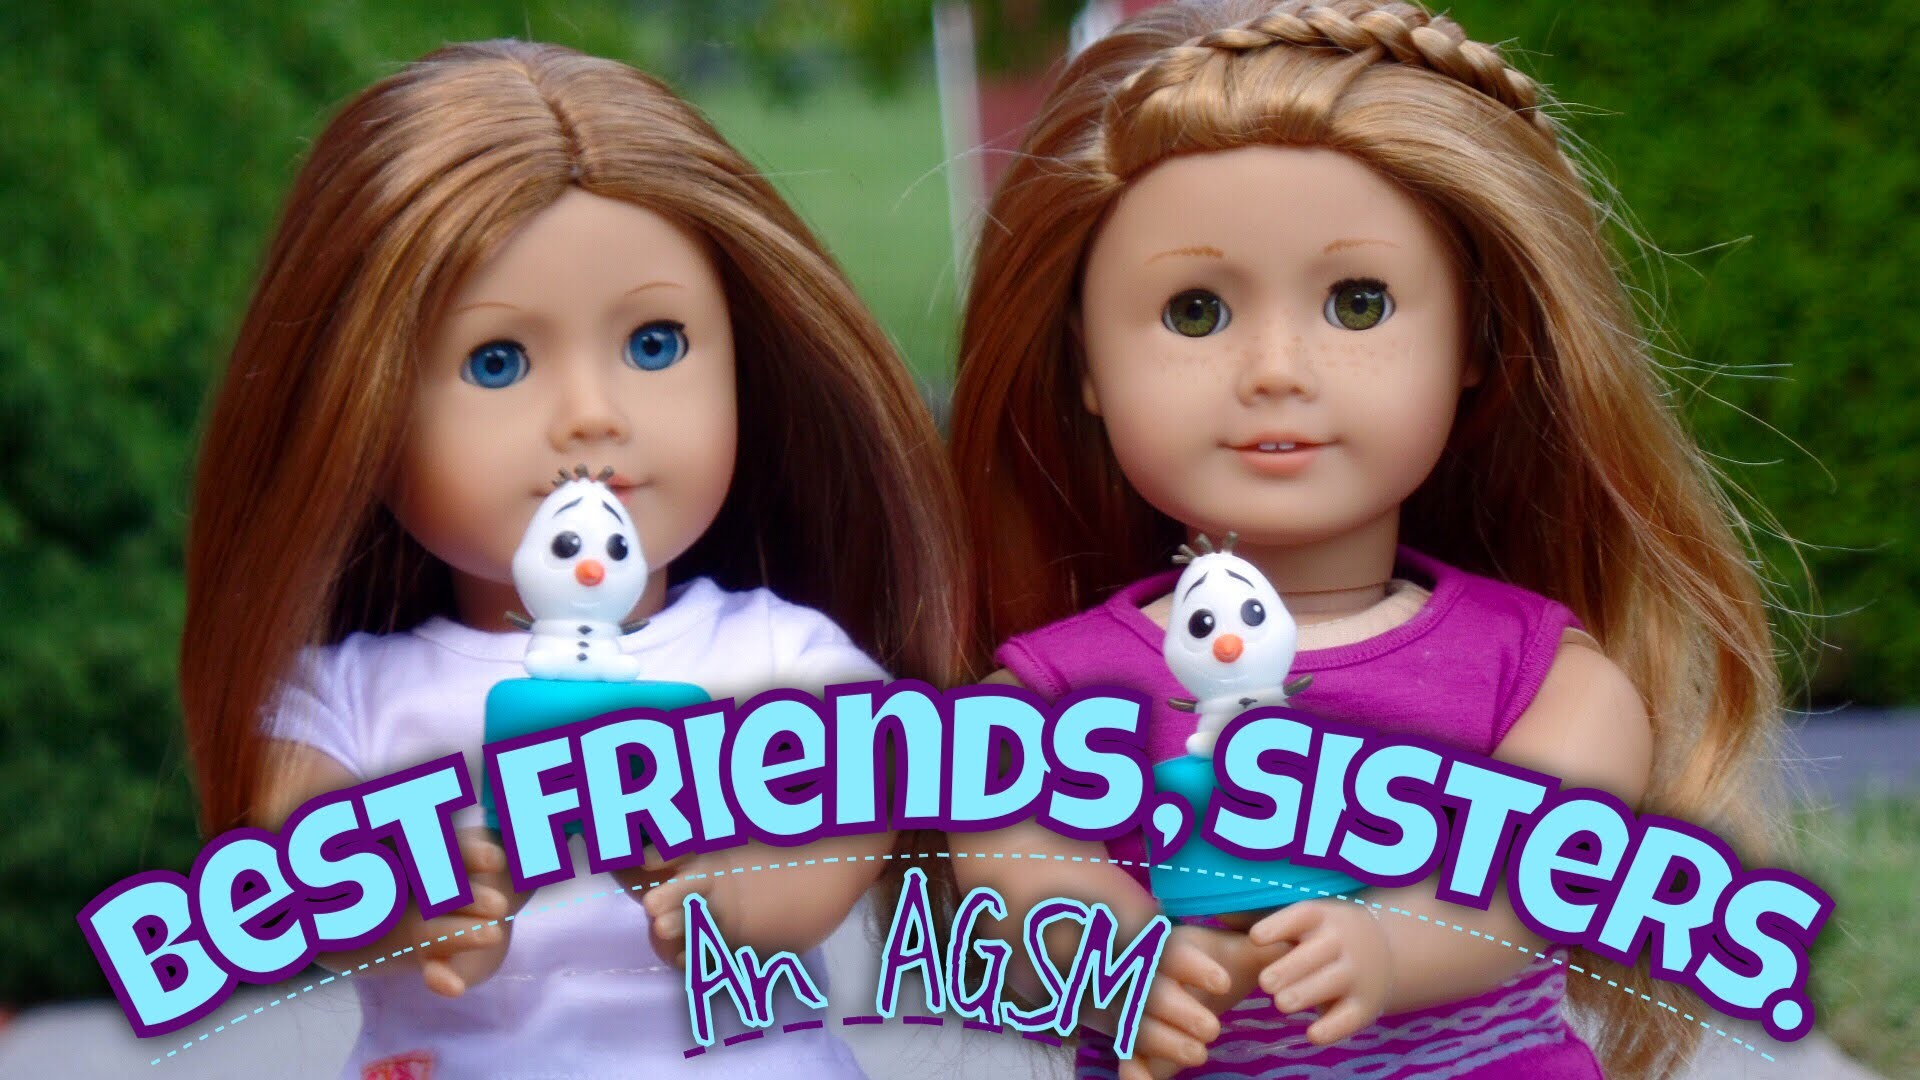 AGSM|American Girl Doll Stop-motion|1st in MrRubydoo234's contest – YouTube